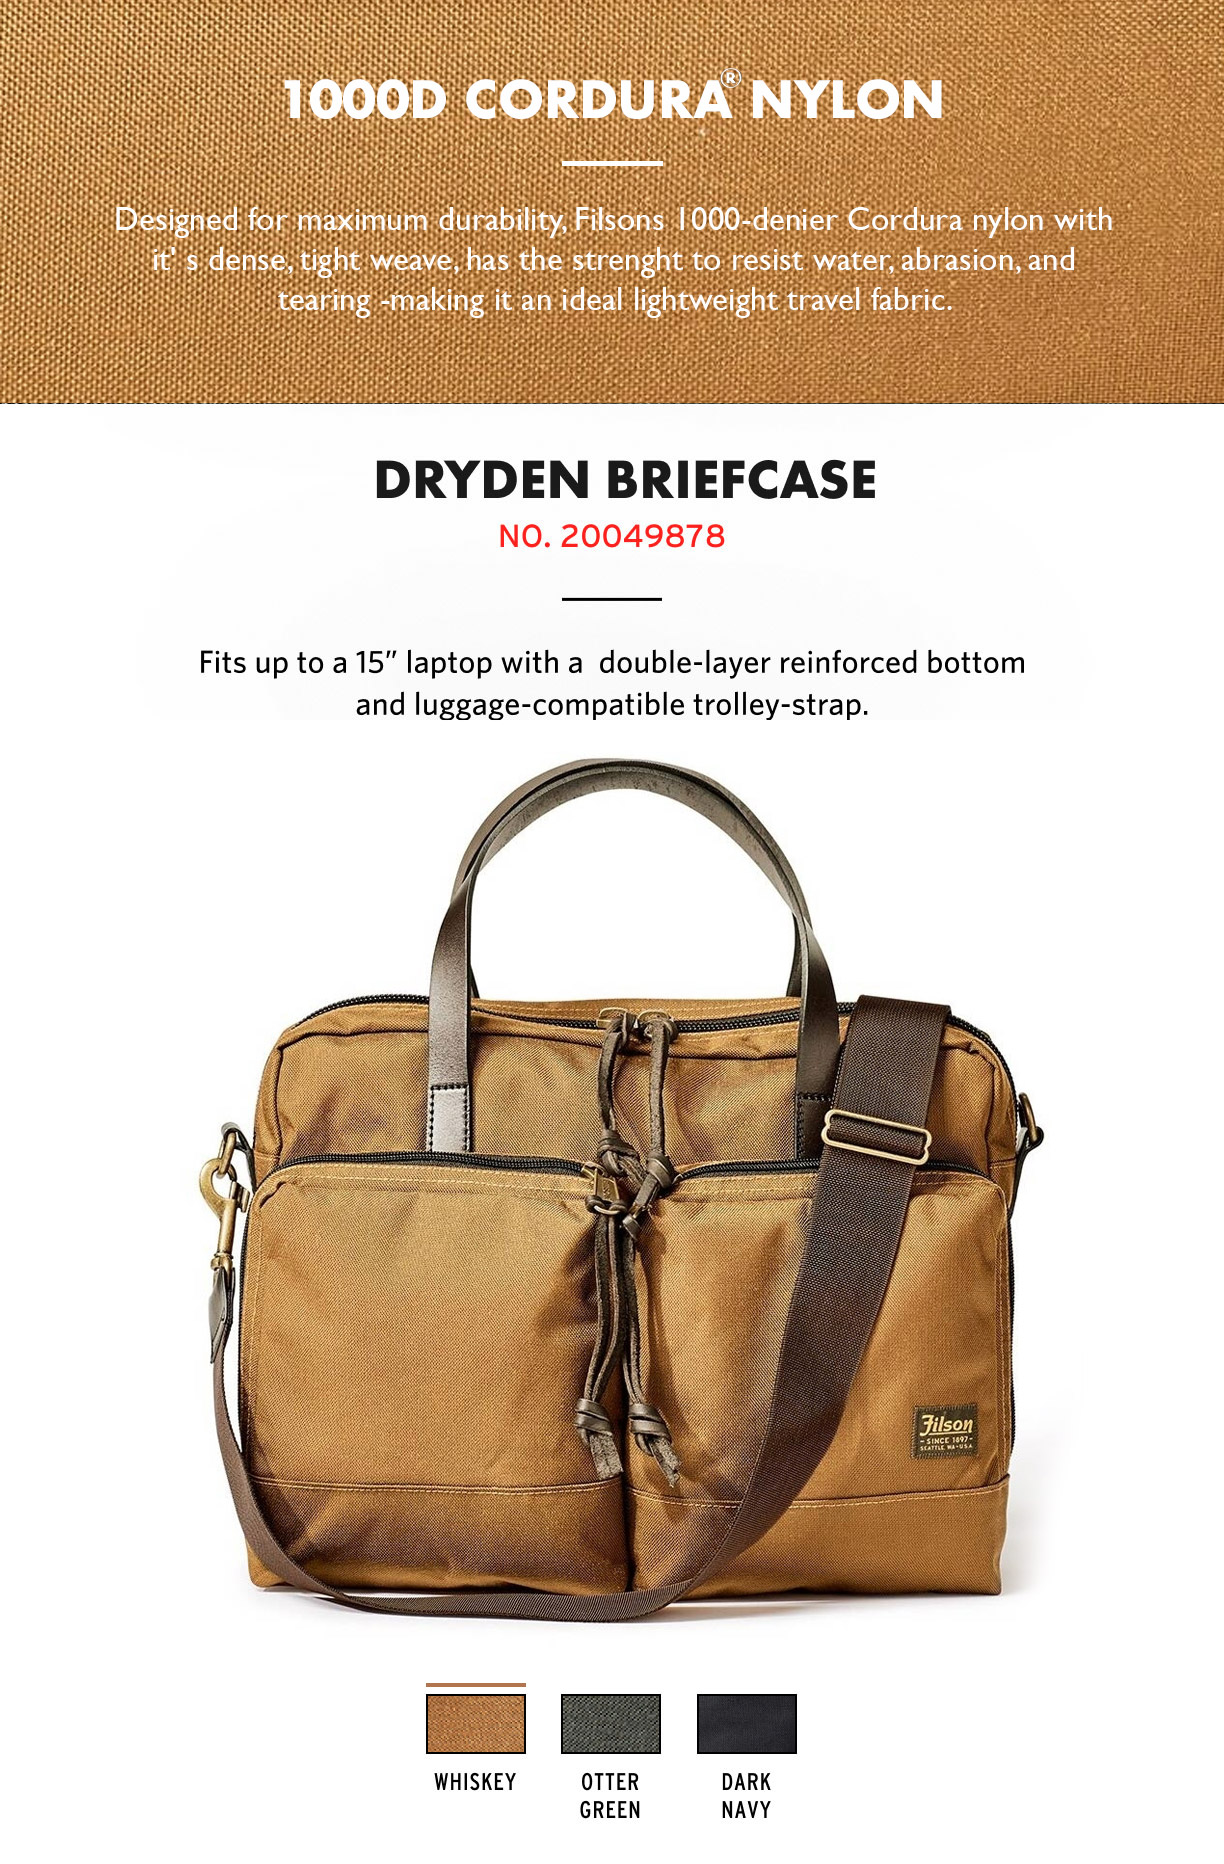 Filson Dryden Briefcase Whiskey Product-information